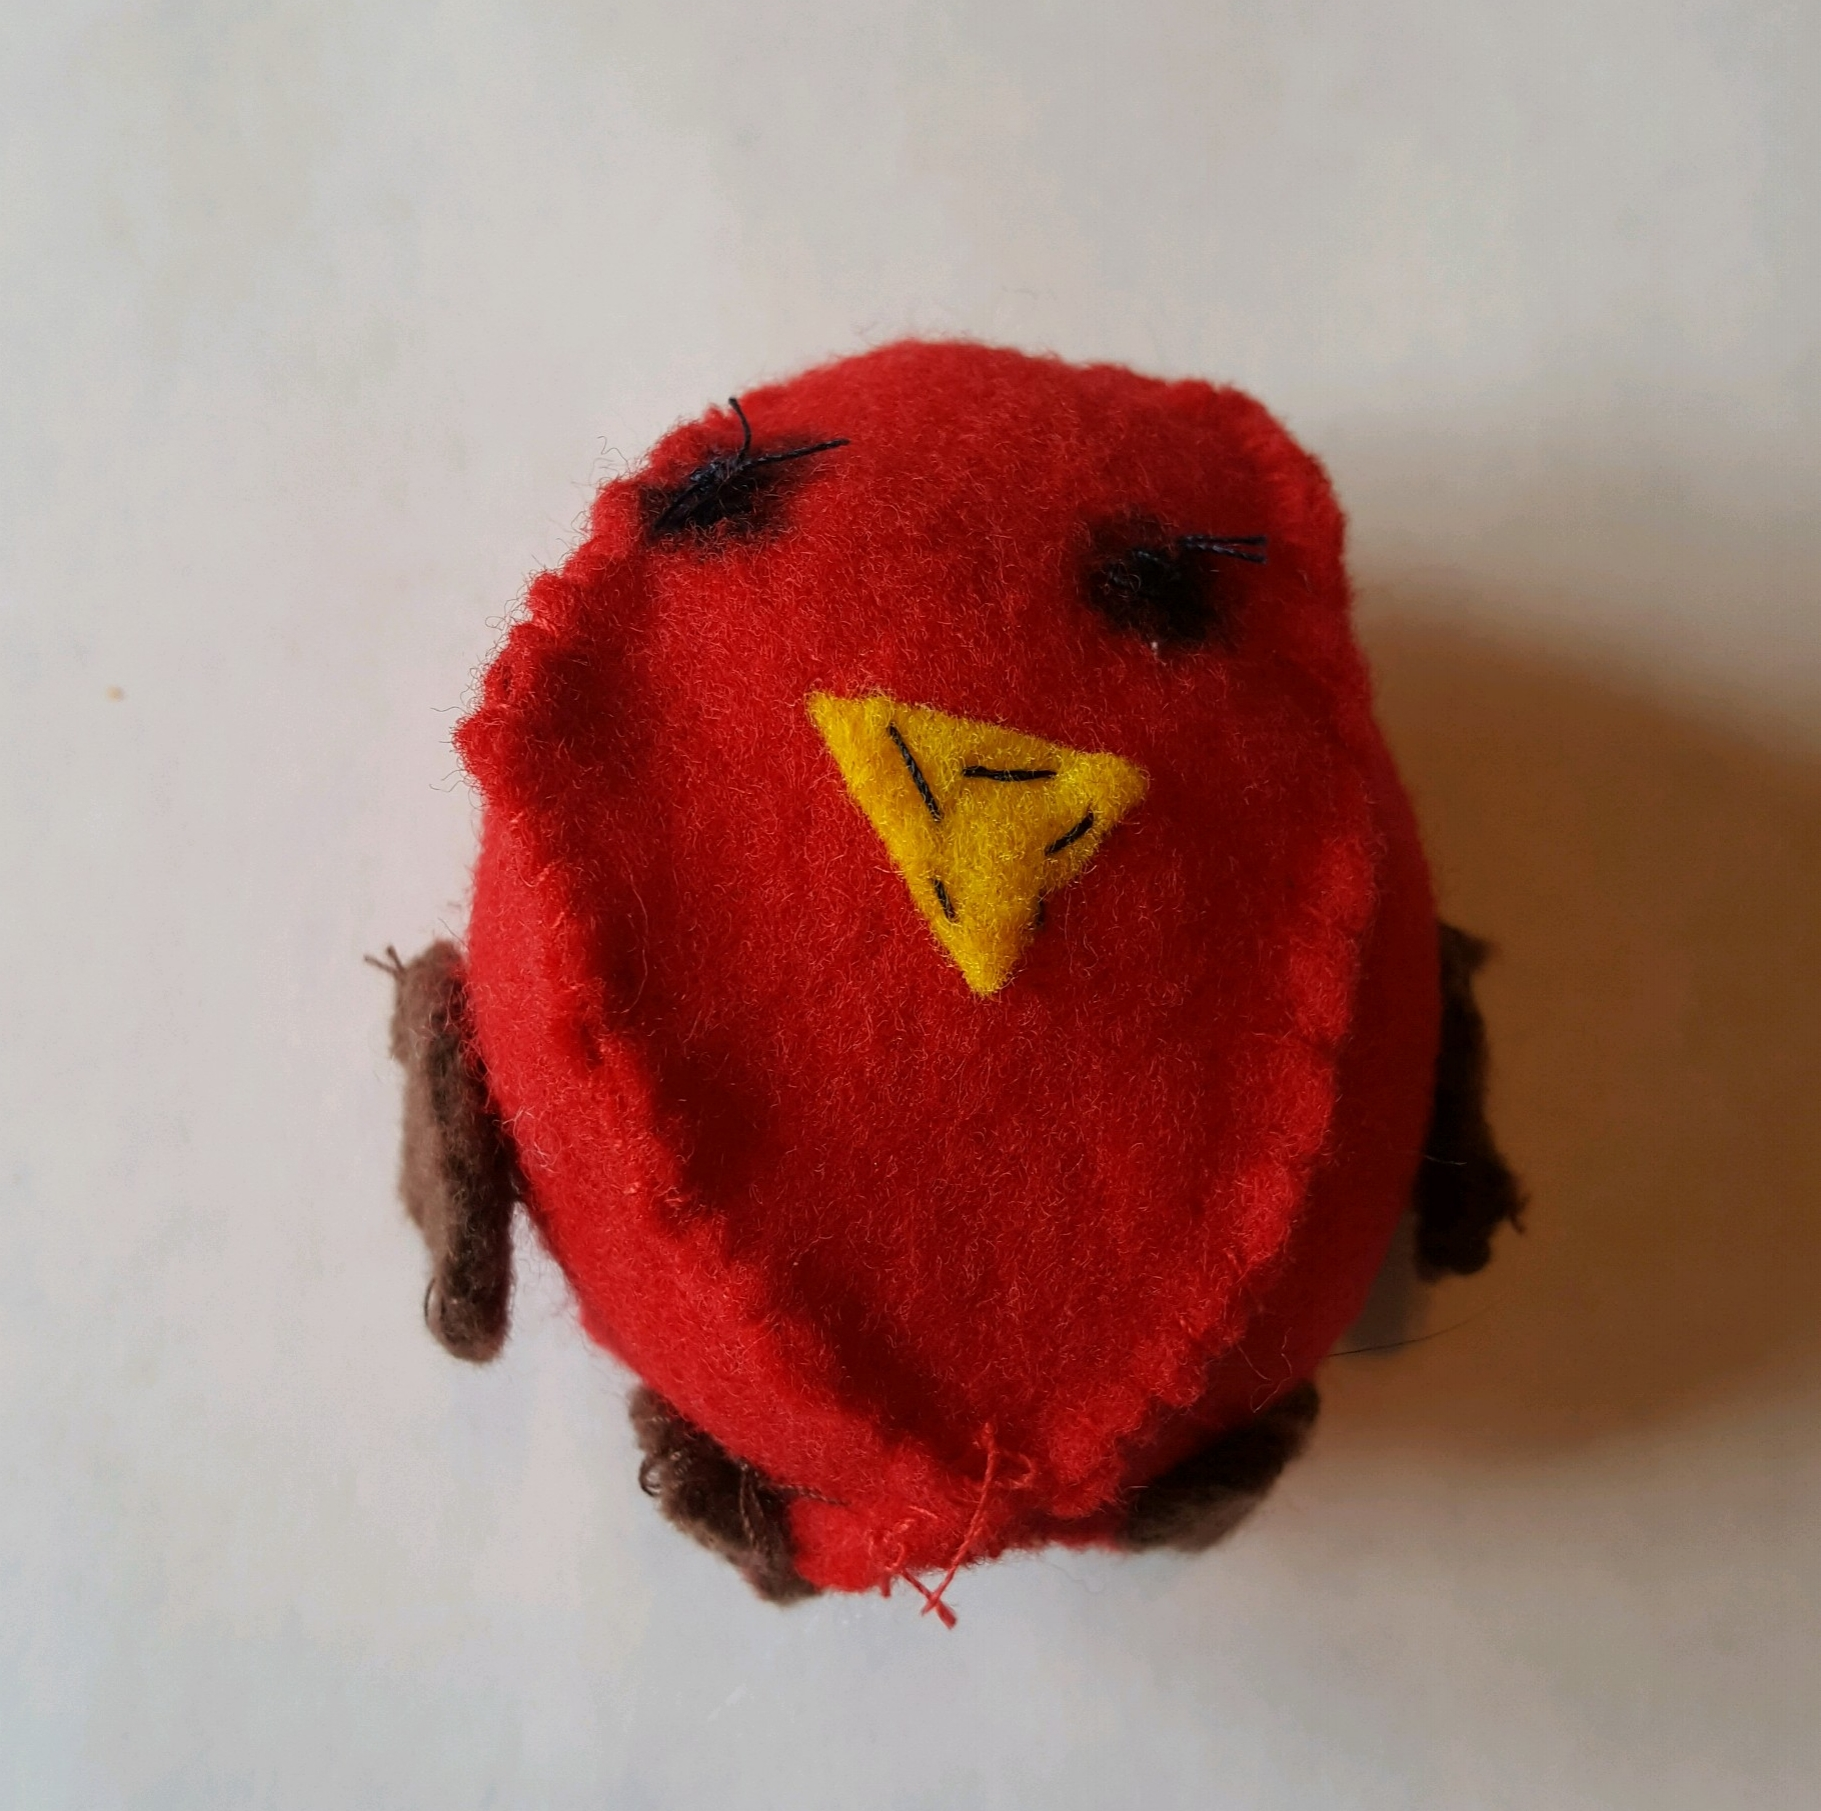 Cardinal, handmade (with lots of fussing) by Gabs